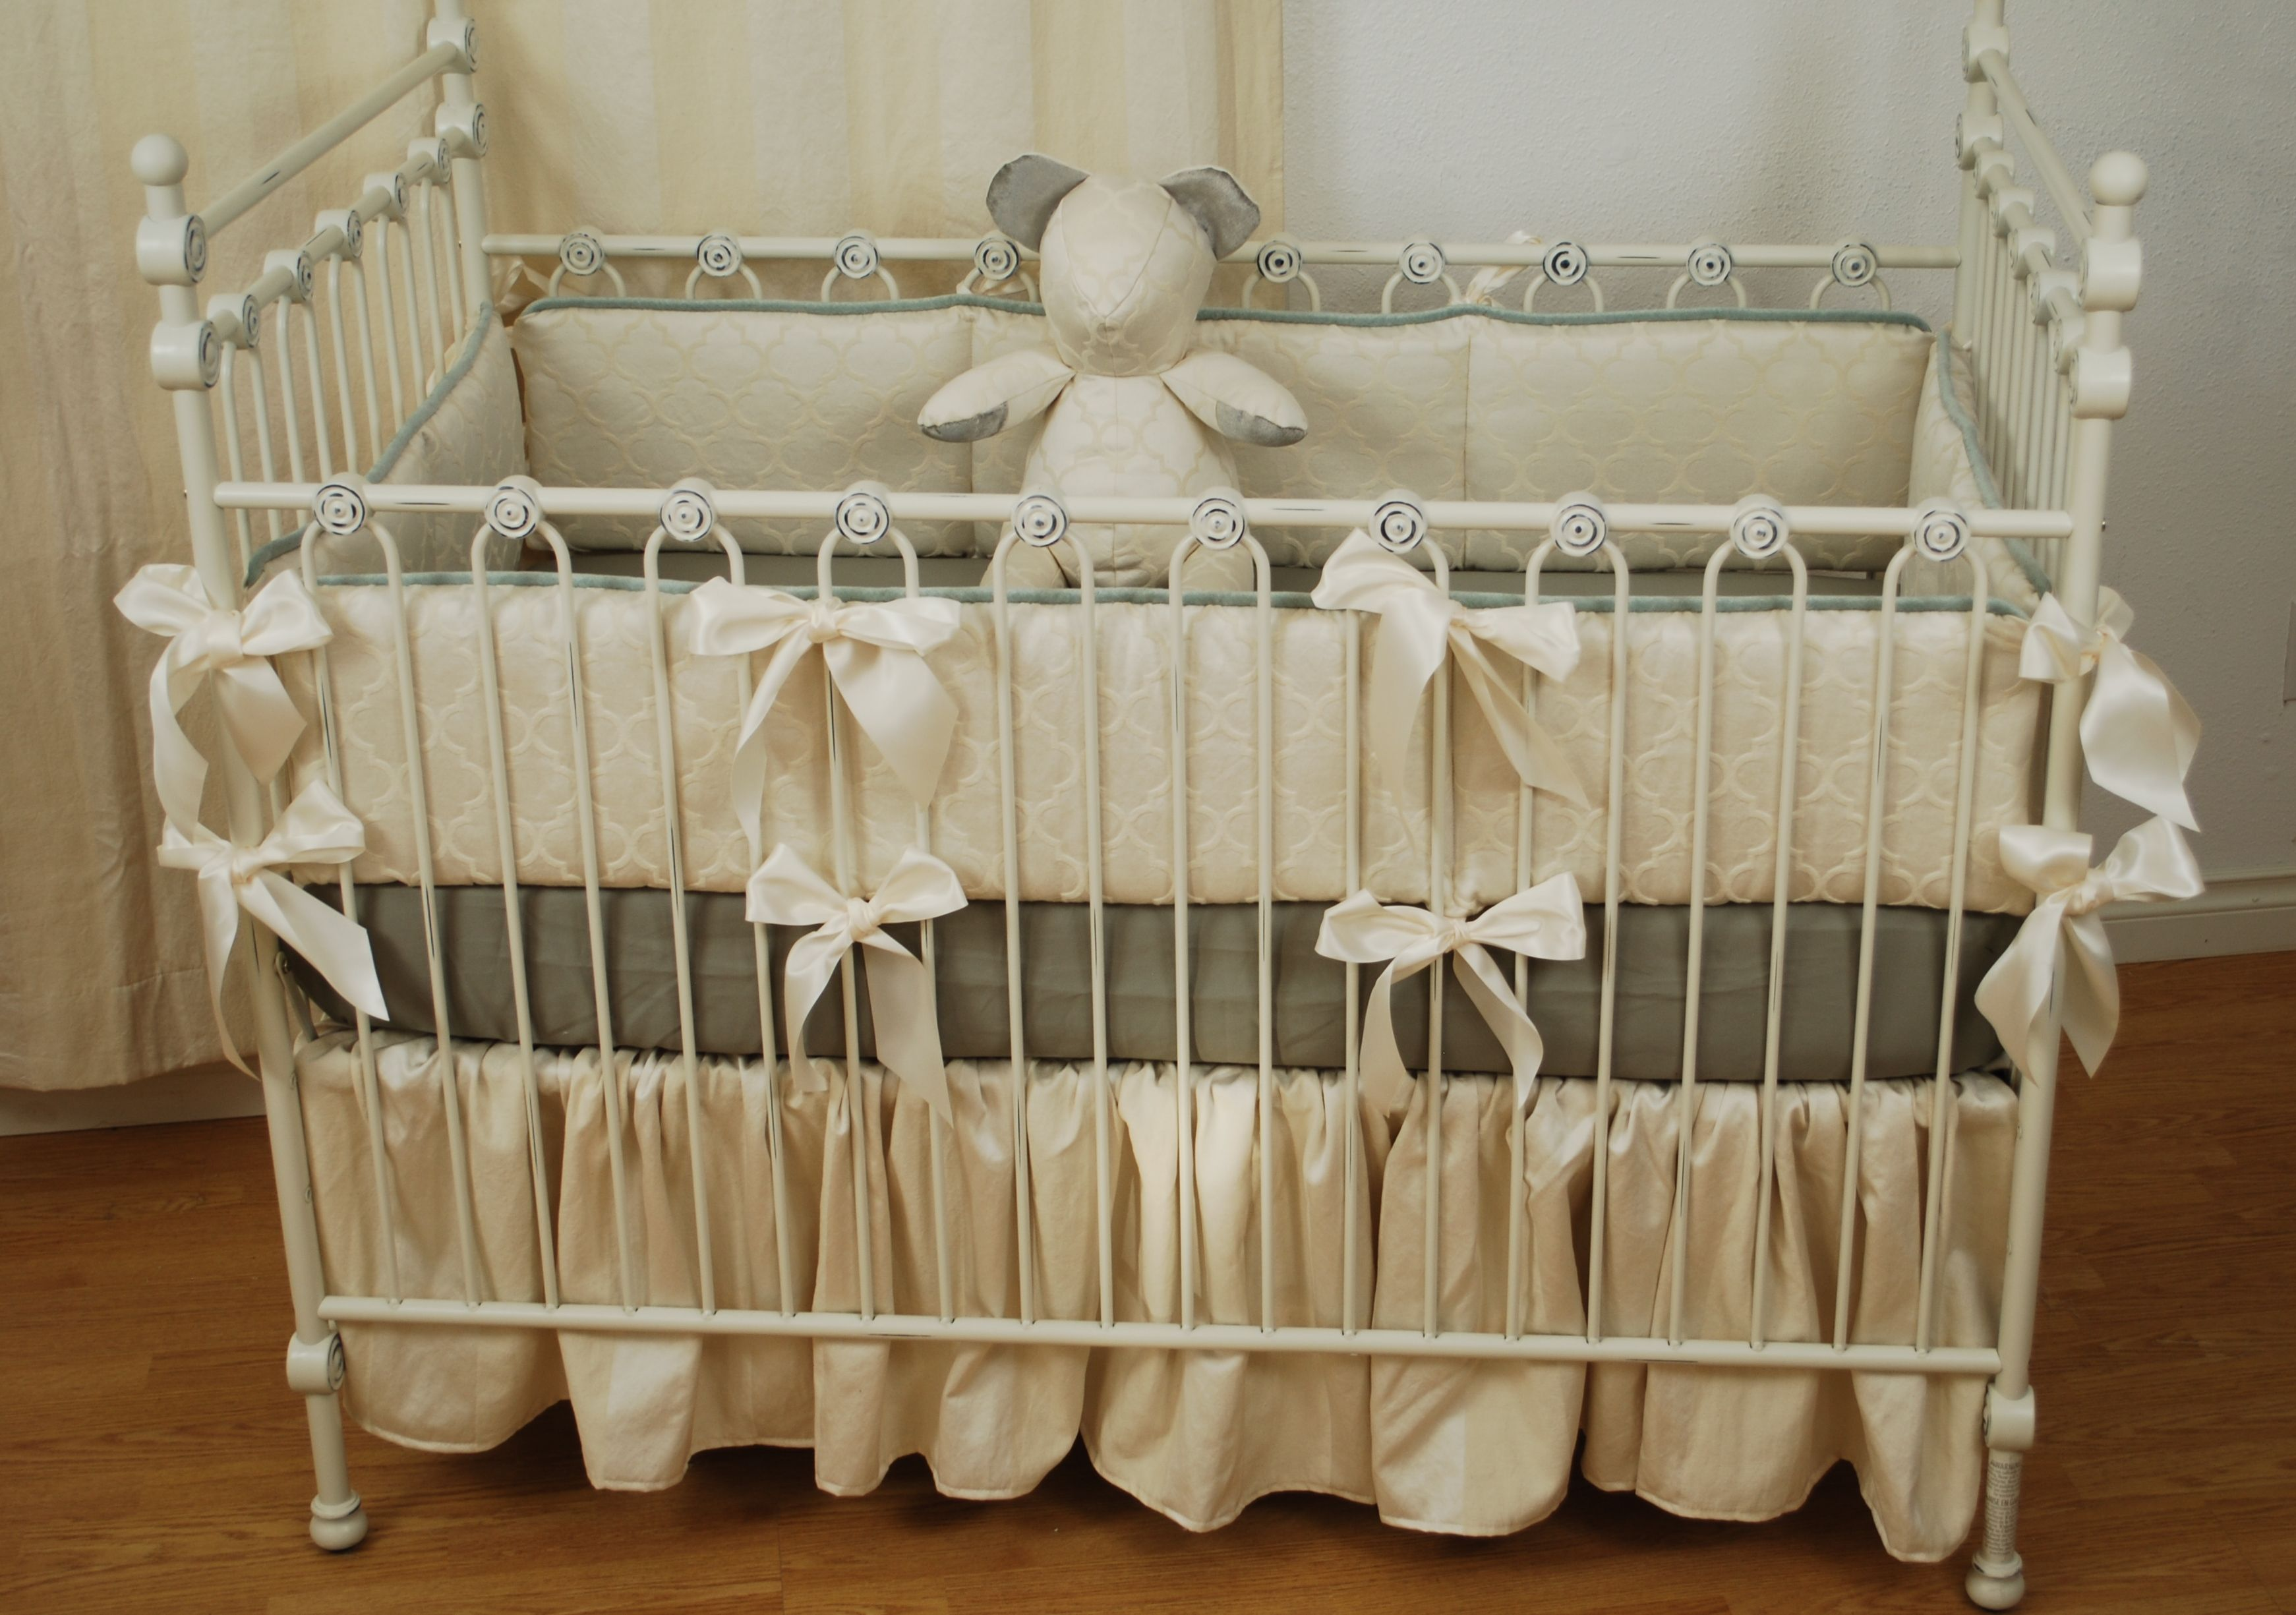 Ivory Quatrefoil Crib Bedding With A Grey Cotton Sheet And Velvet Ears On The